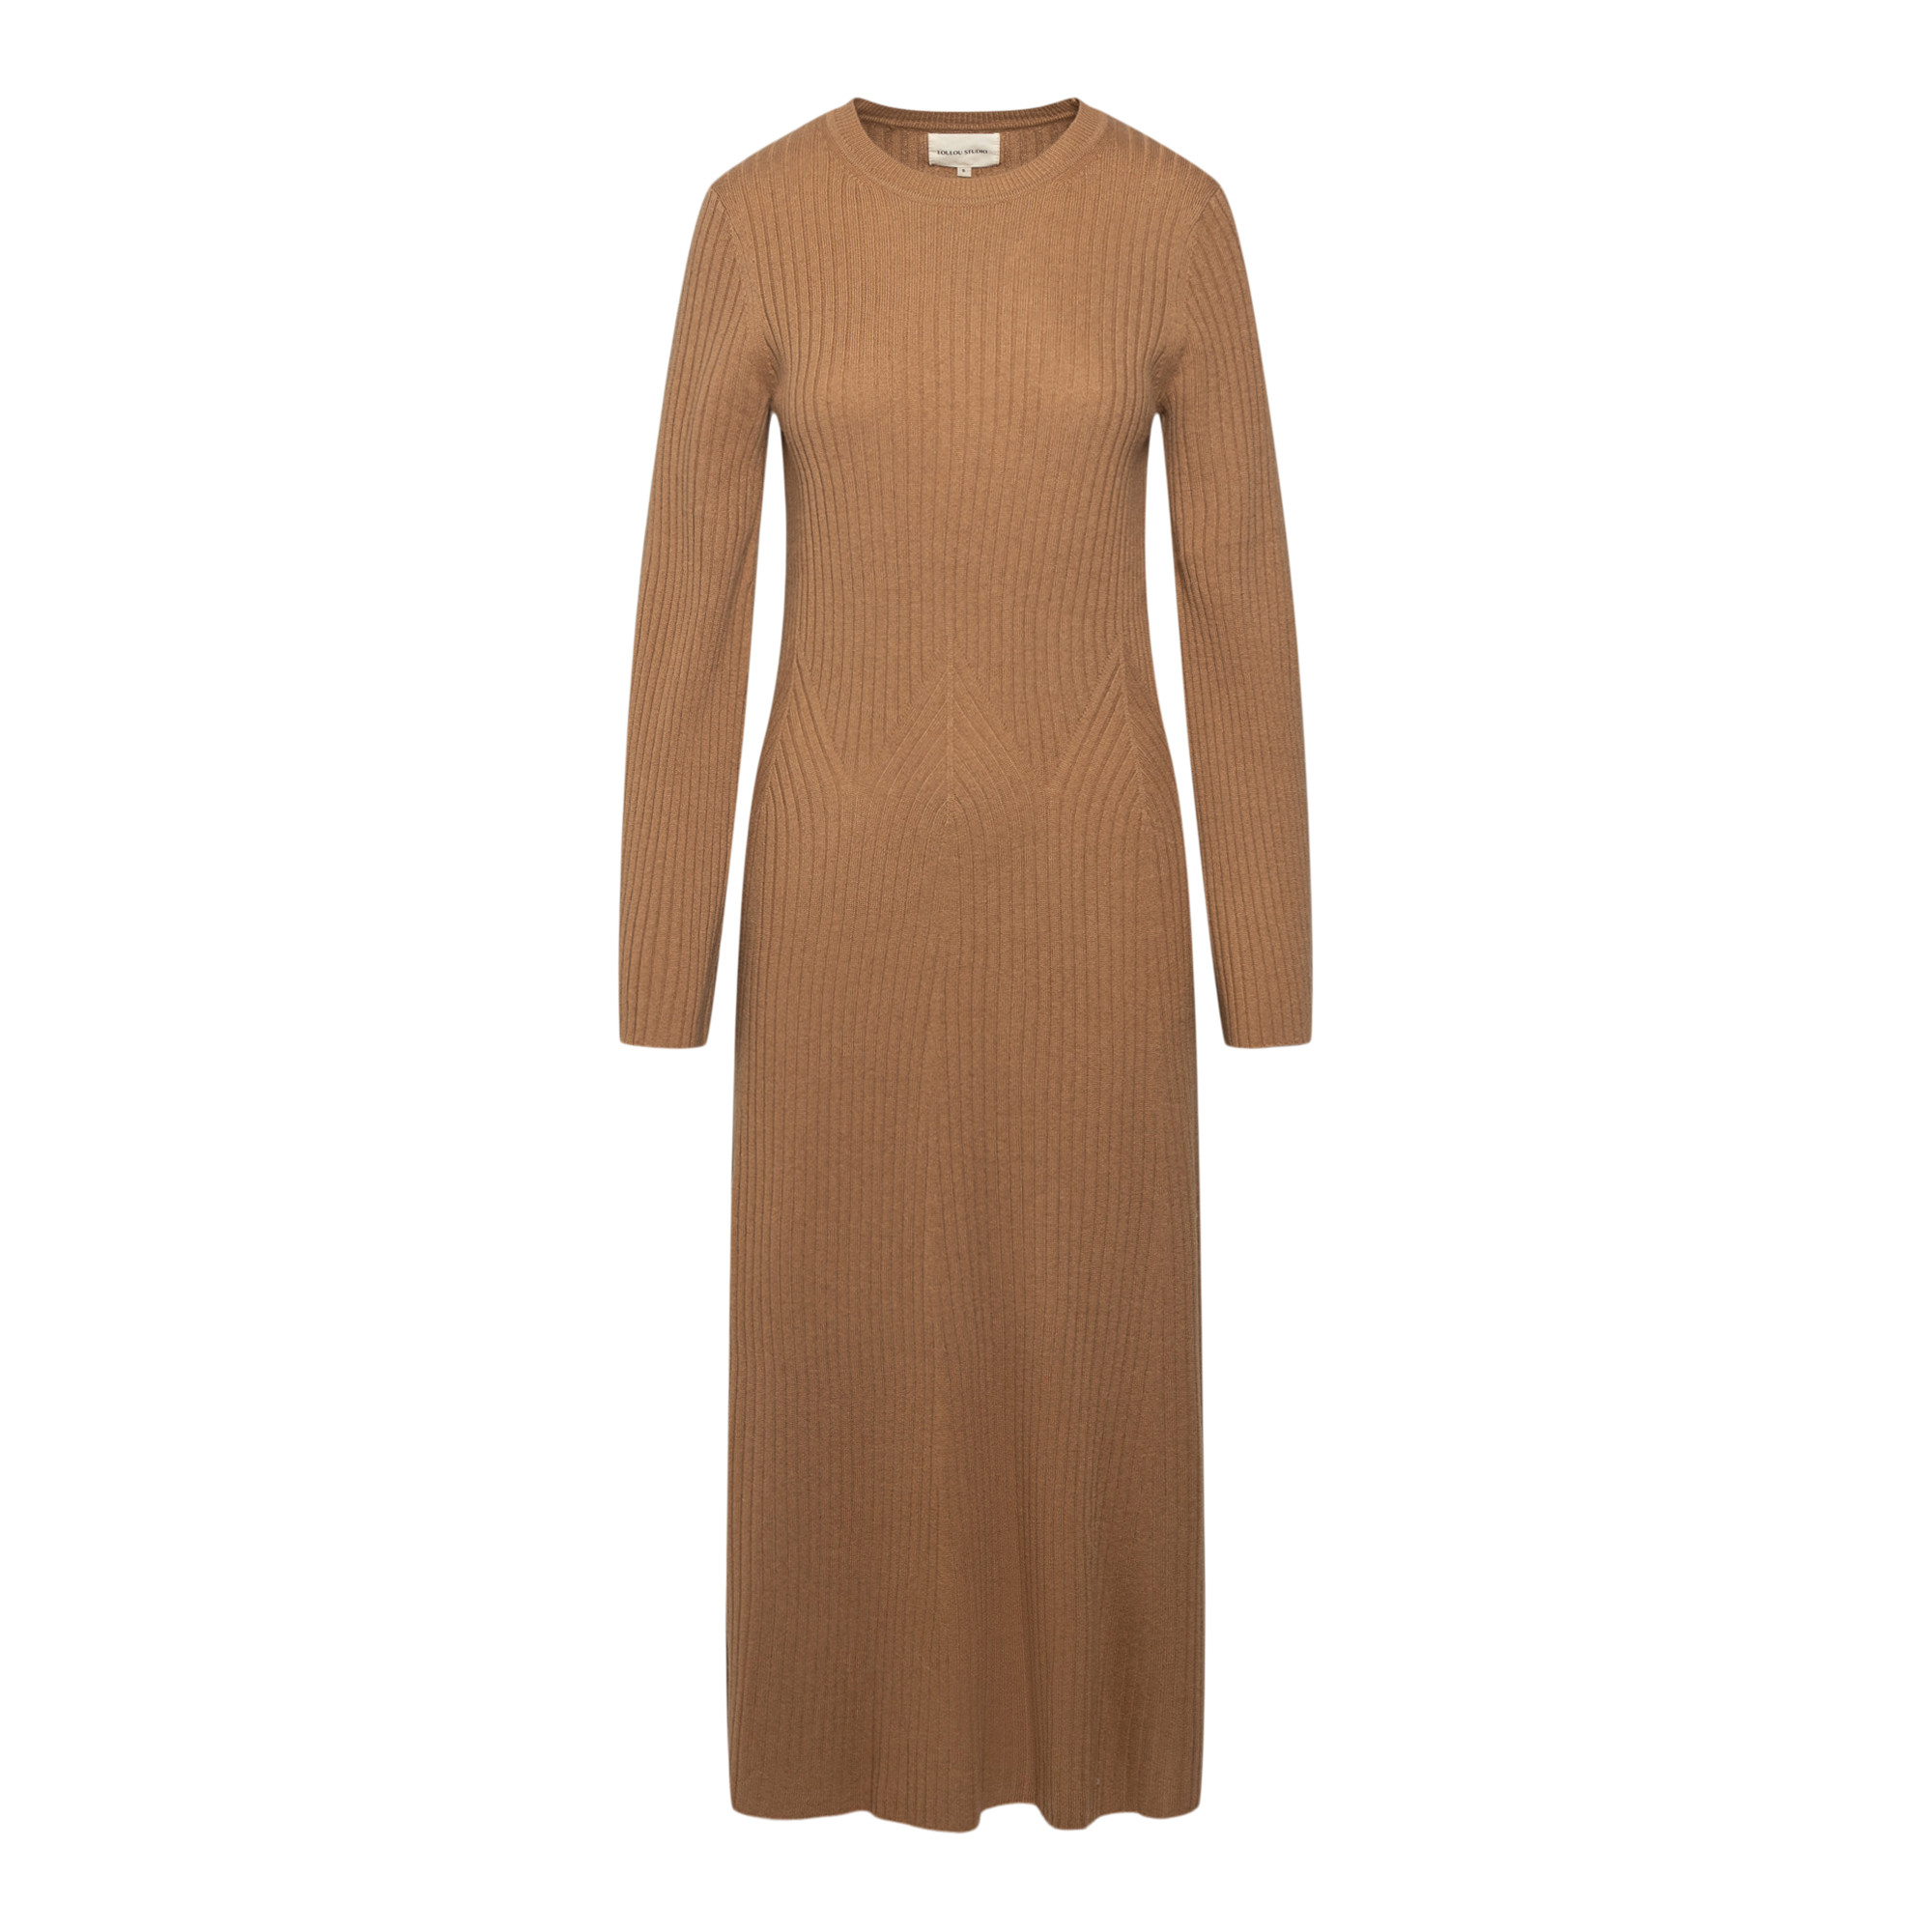 Long knitted dress                                                                                                                                     LOULOU STUDIO